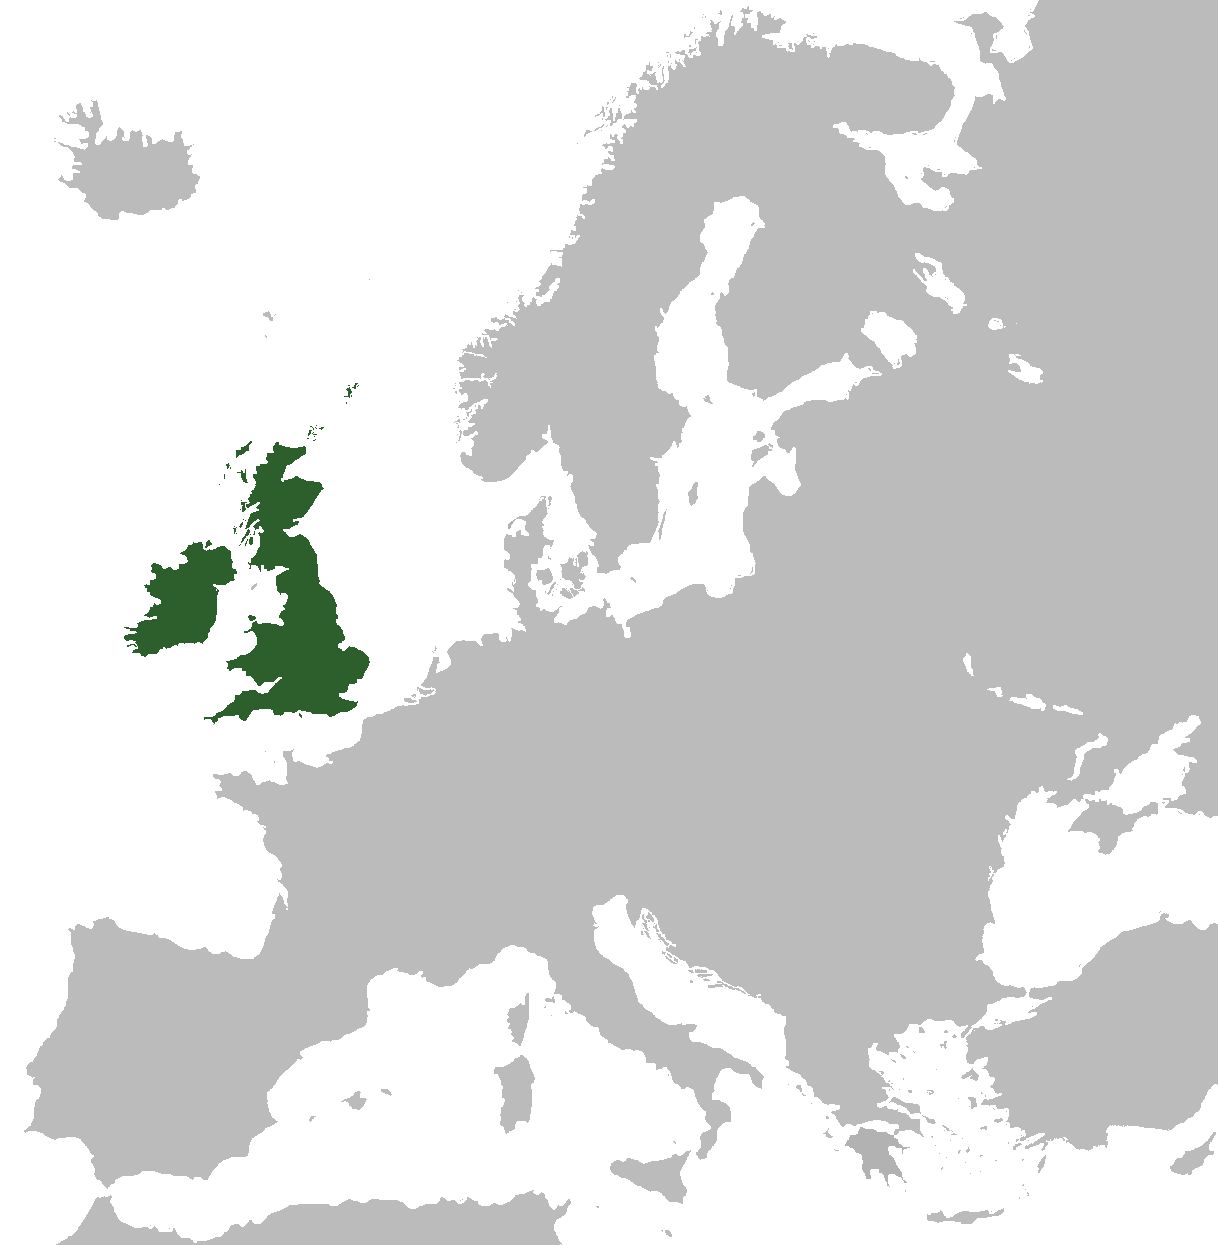 file uk of britain u0026 ireland in europe png wikimedia commons